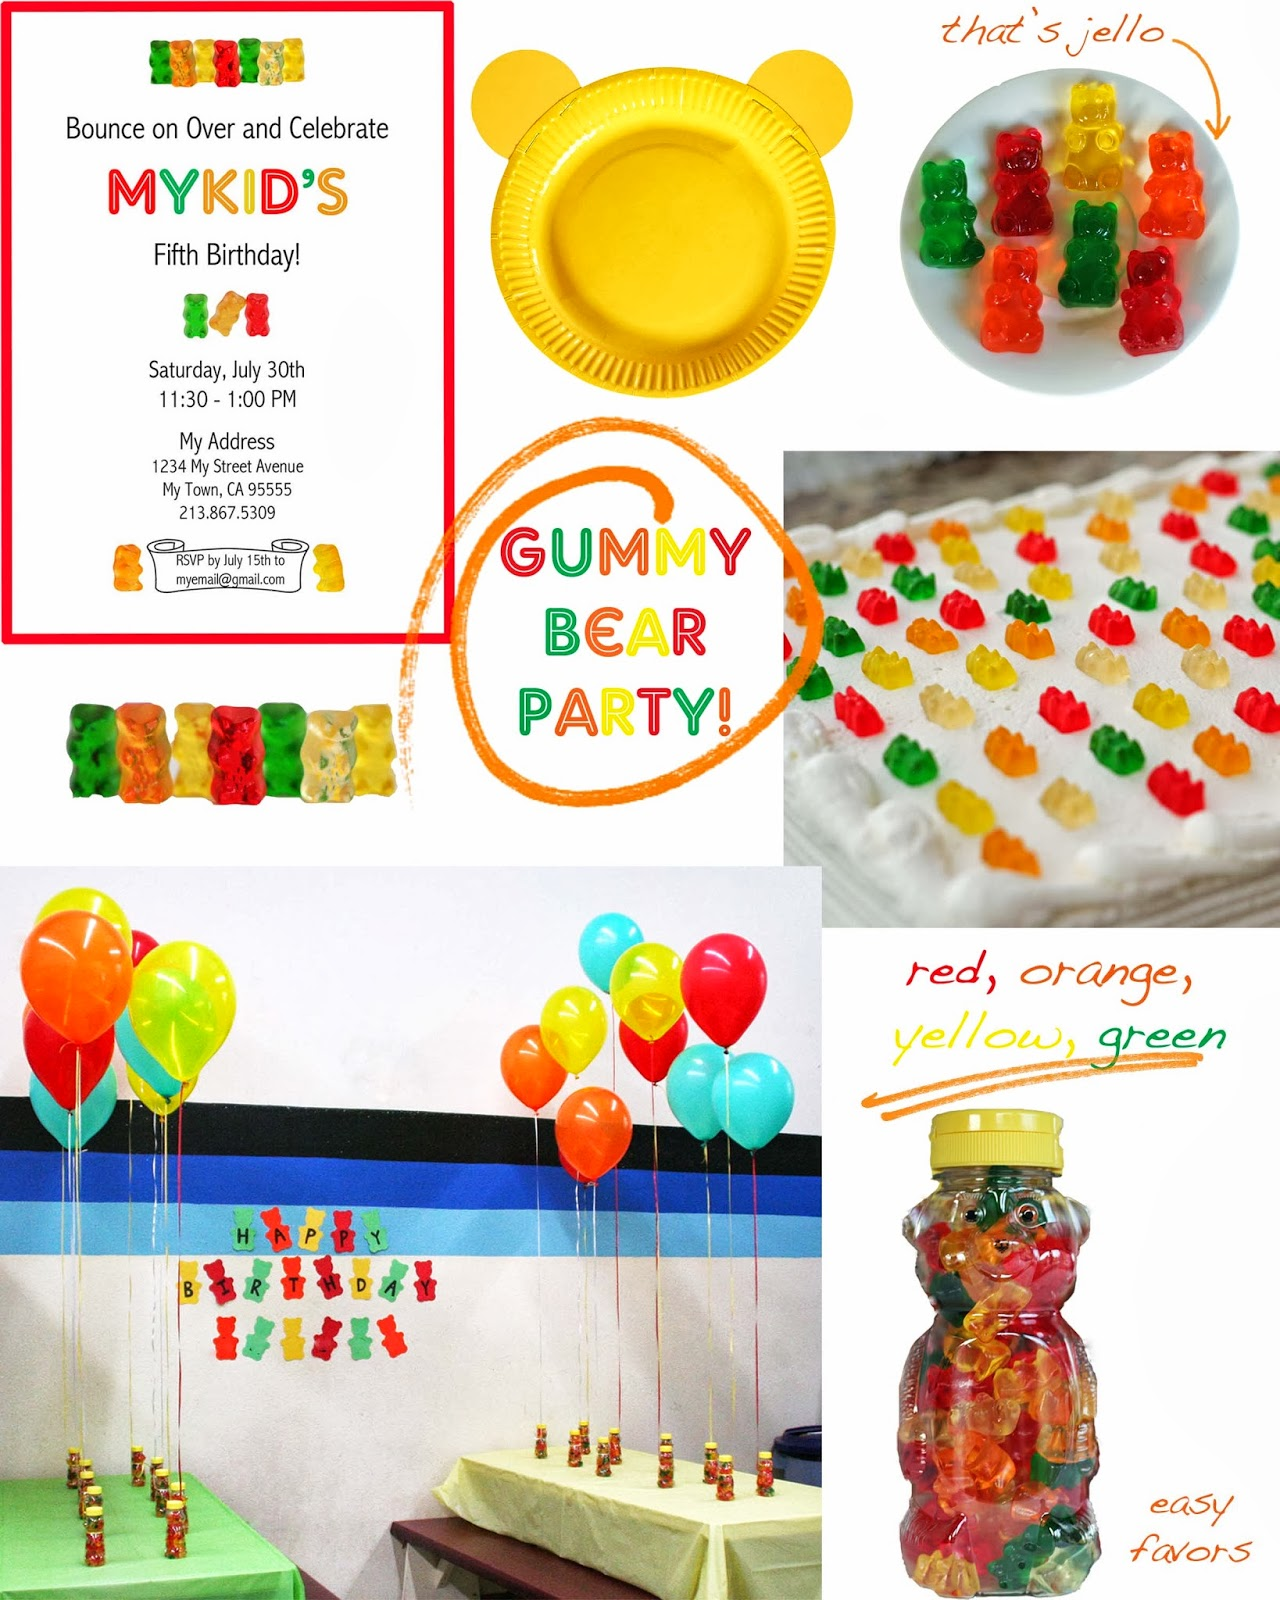 Party Gummy Bears